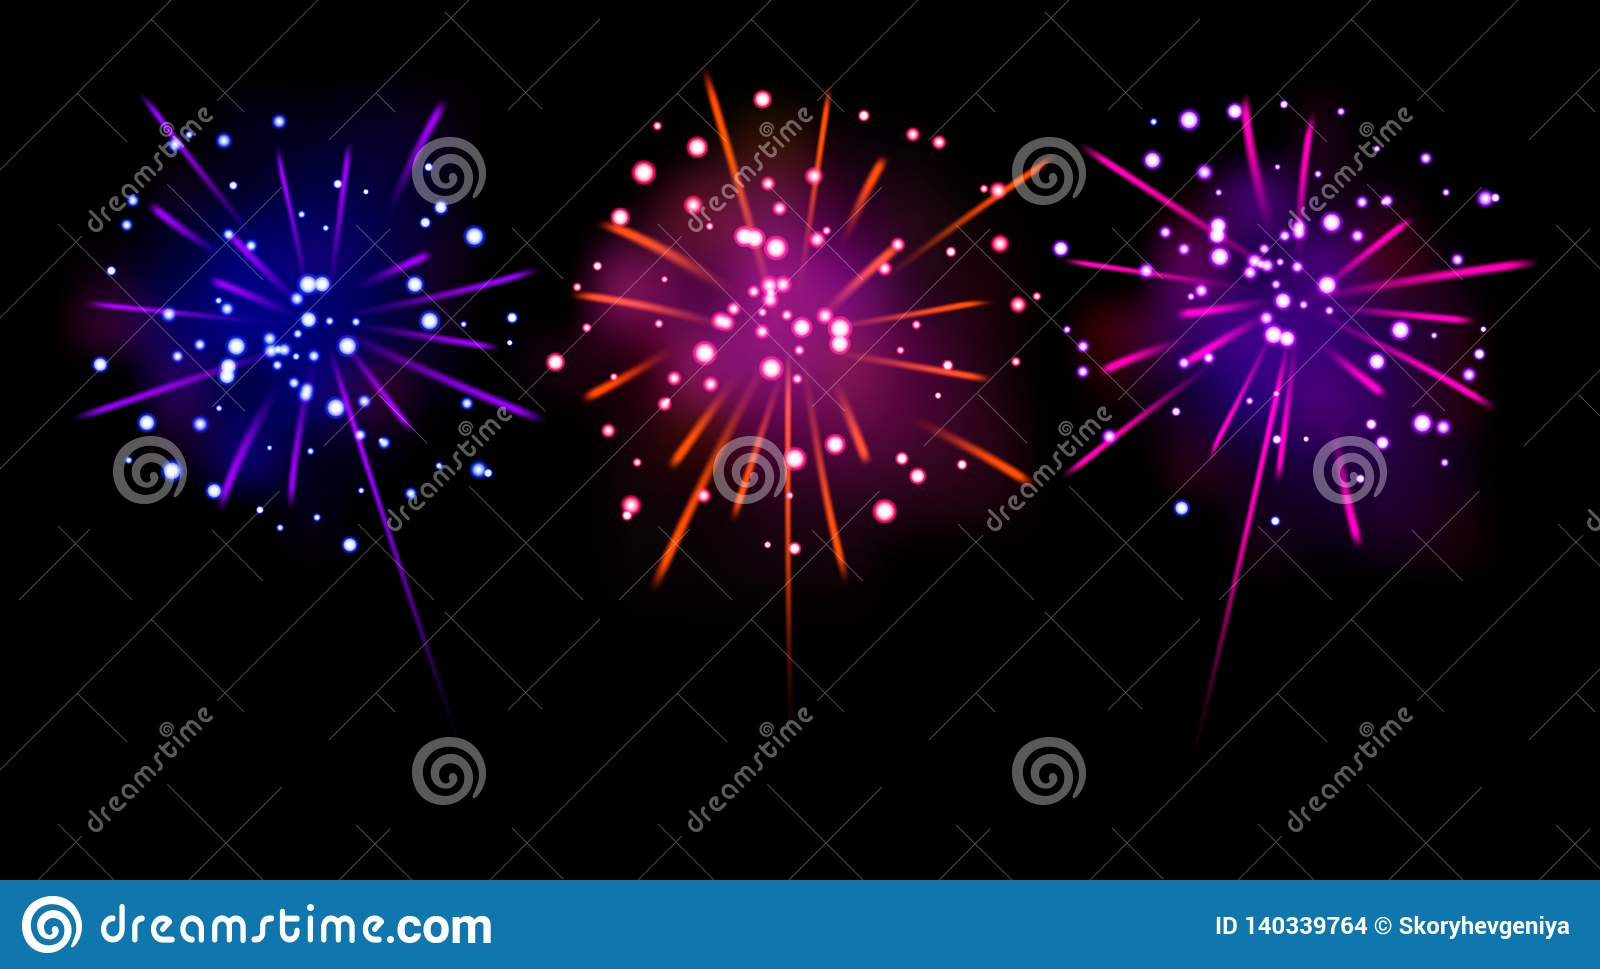 Vector Illustration Set Of Realistic Blue, Pink, Purple Firecrackers